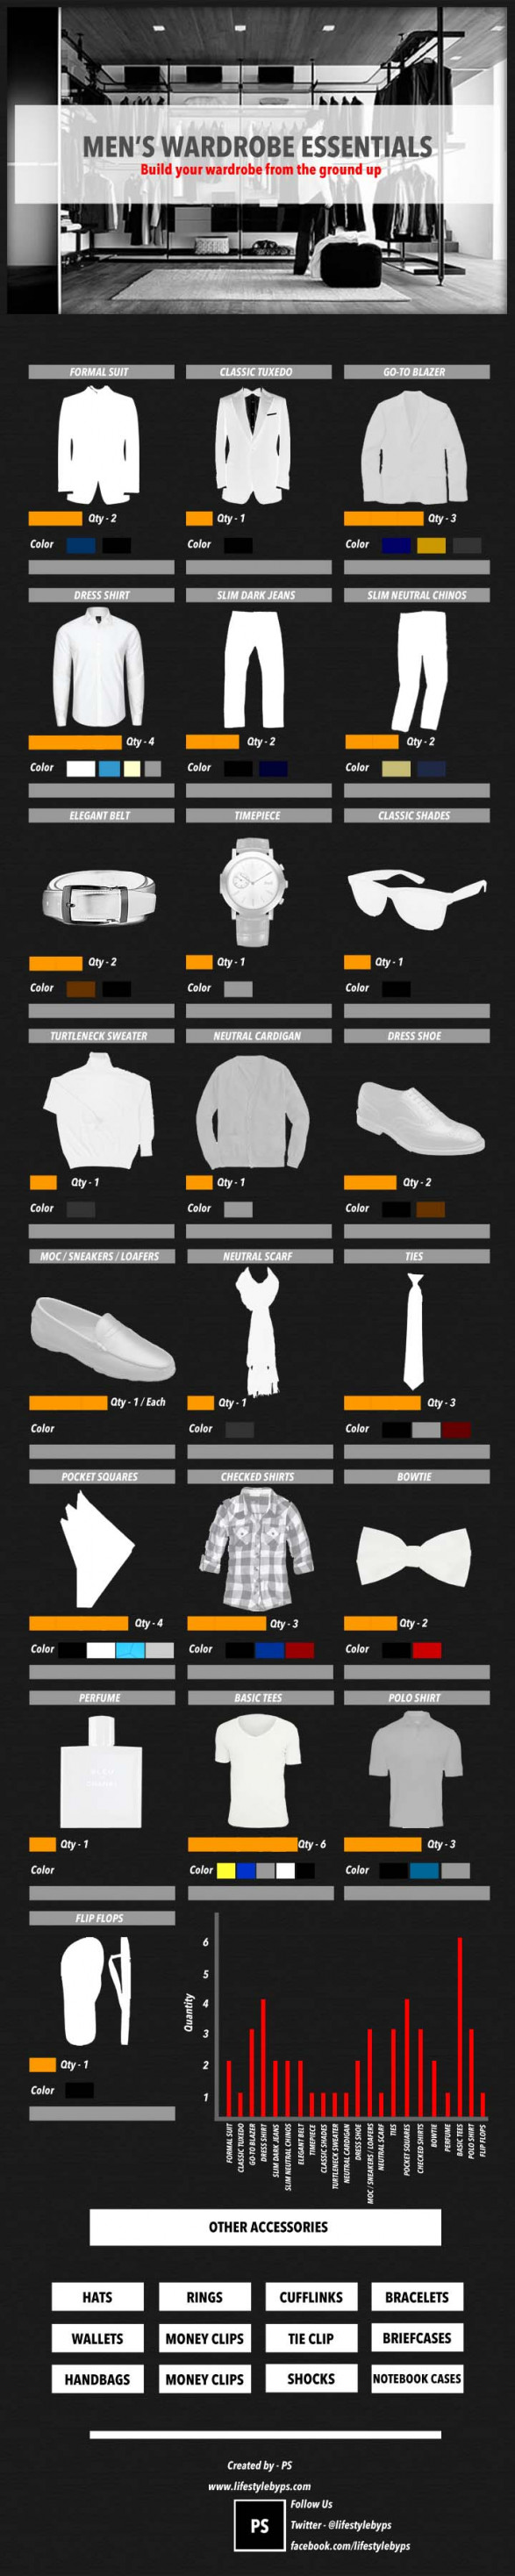 Build your wardrobe from the ground up - Wardrobe essentials for Men